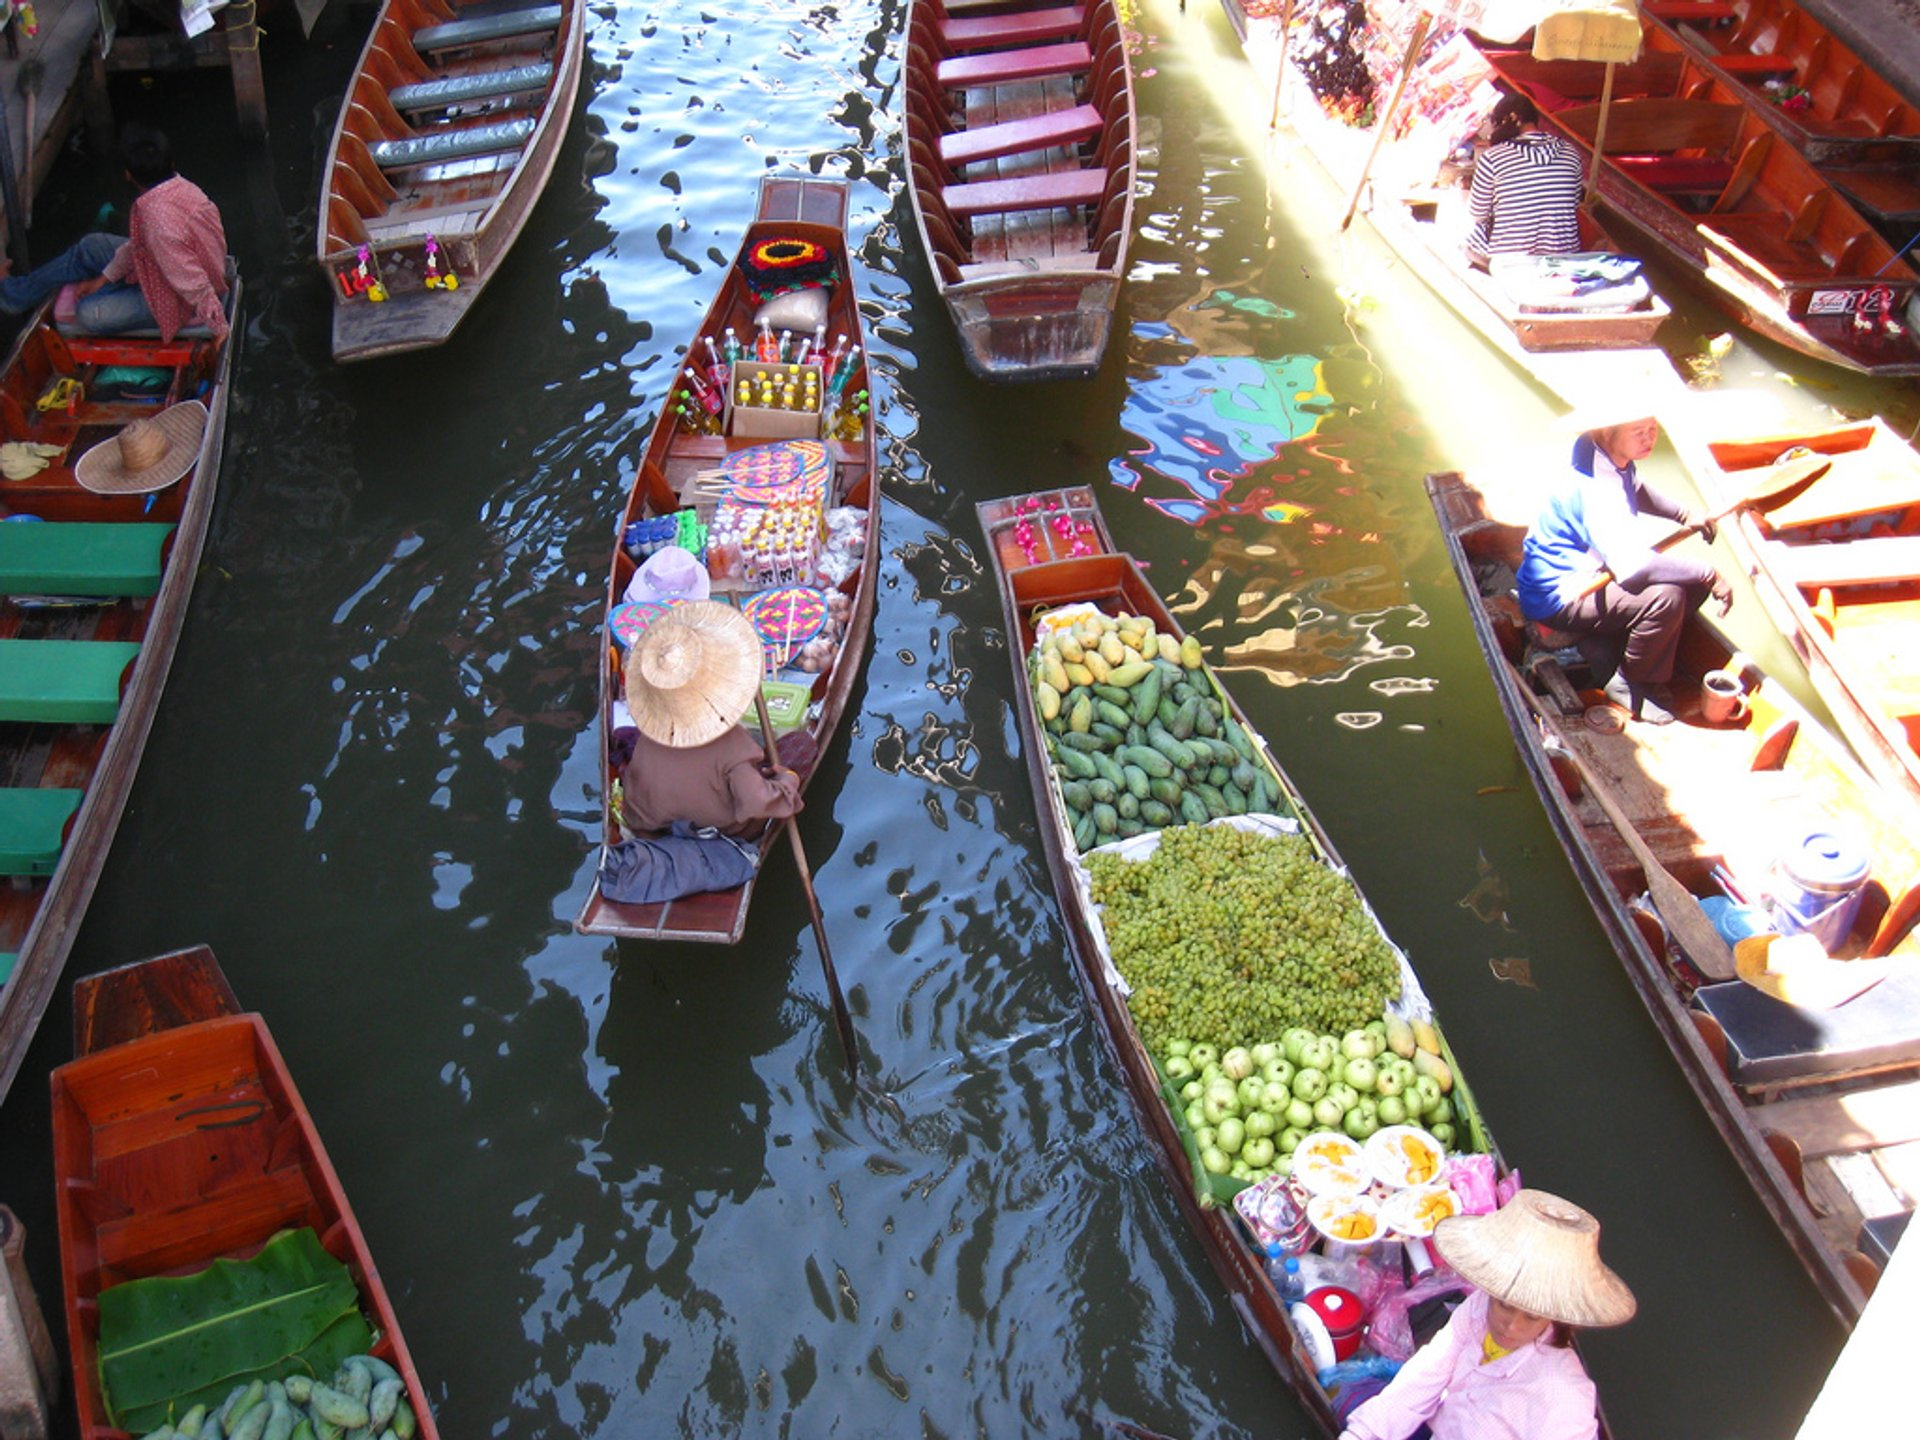 Amphawa floating market 2020